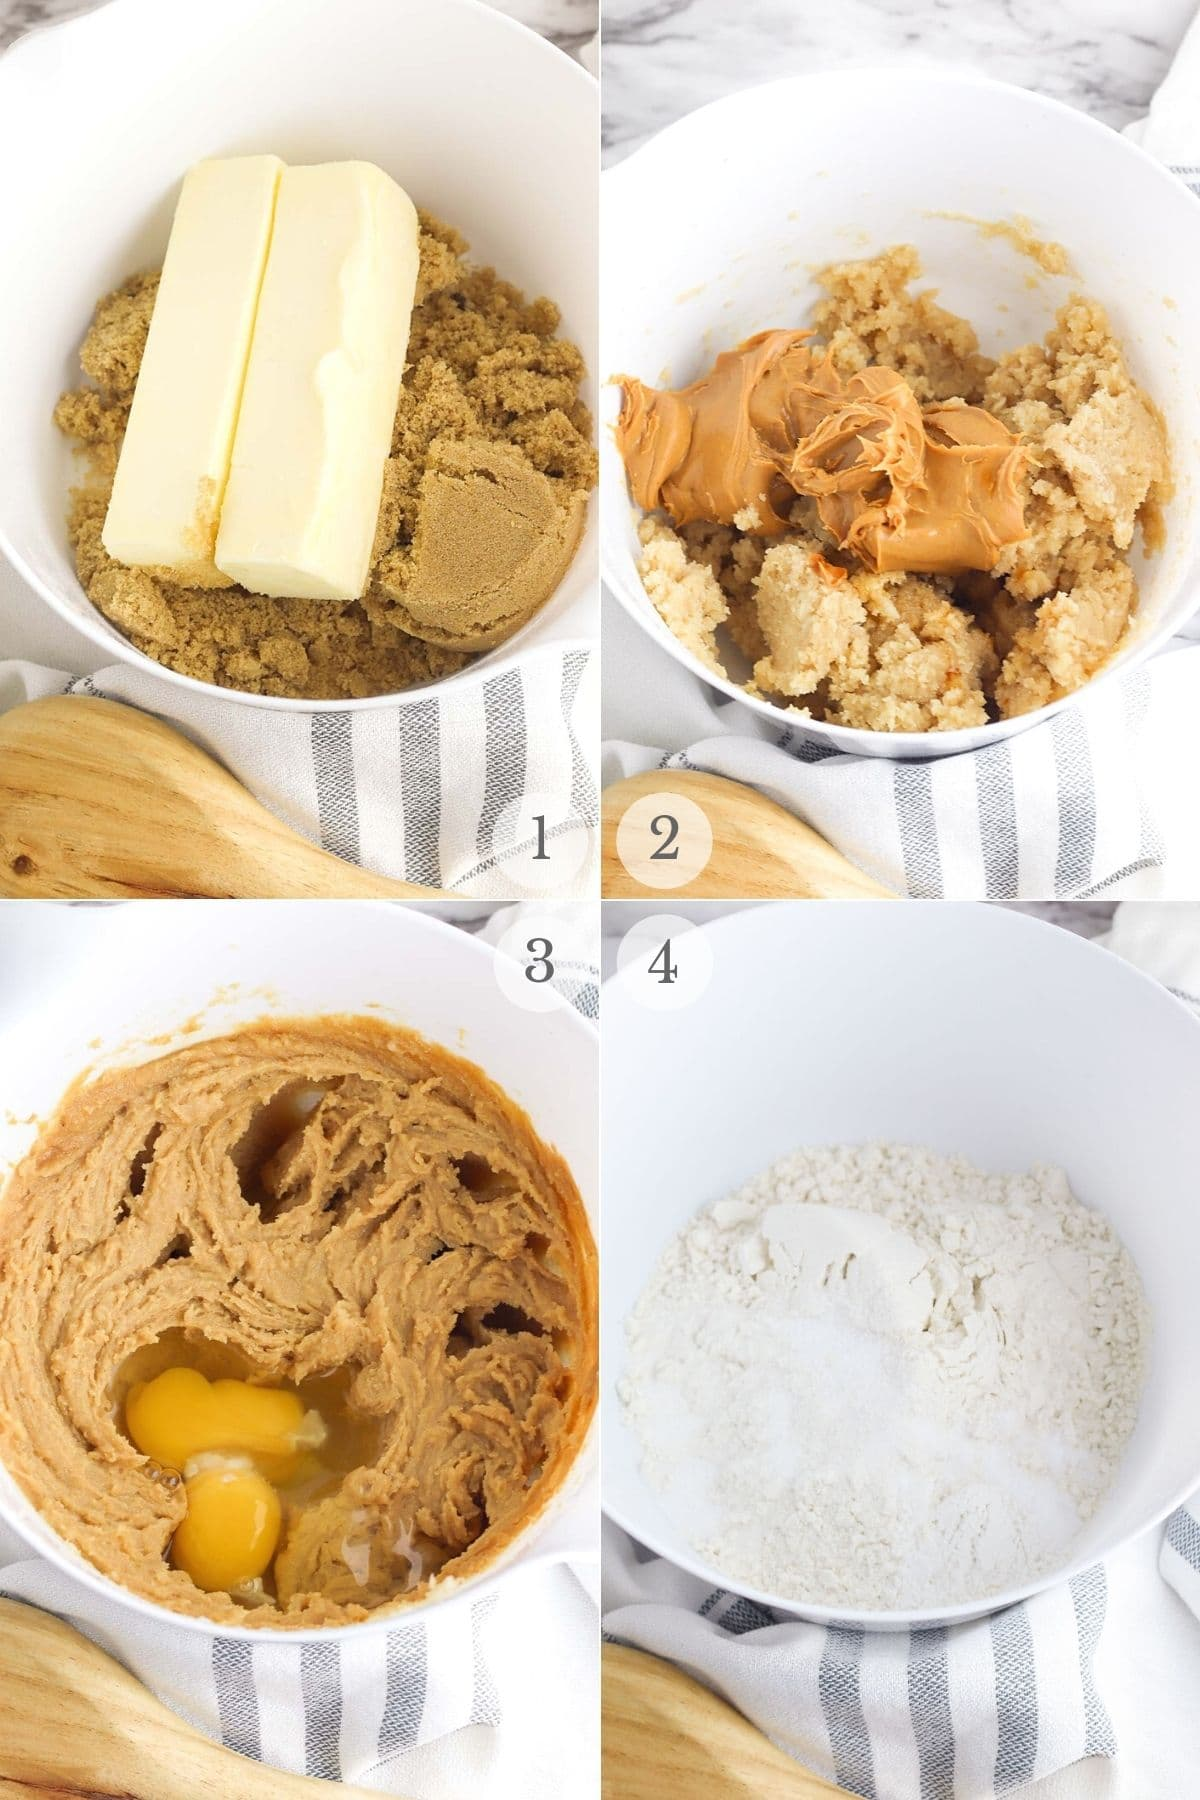 peanut-butter-chocolate-chip-cookies-recipe-steps-1-4